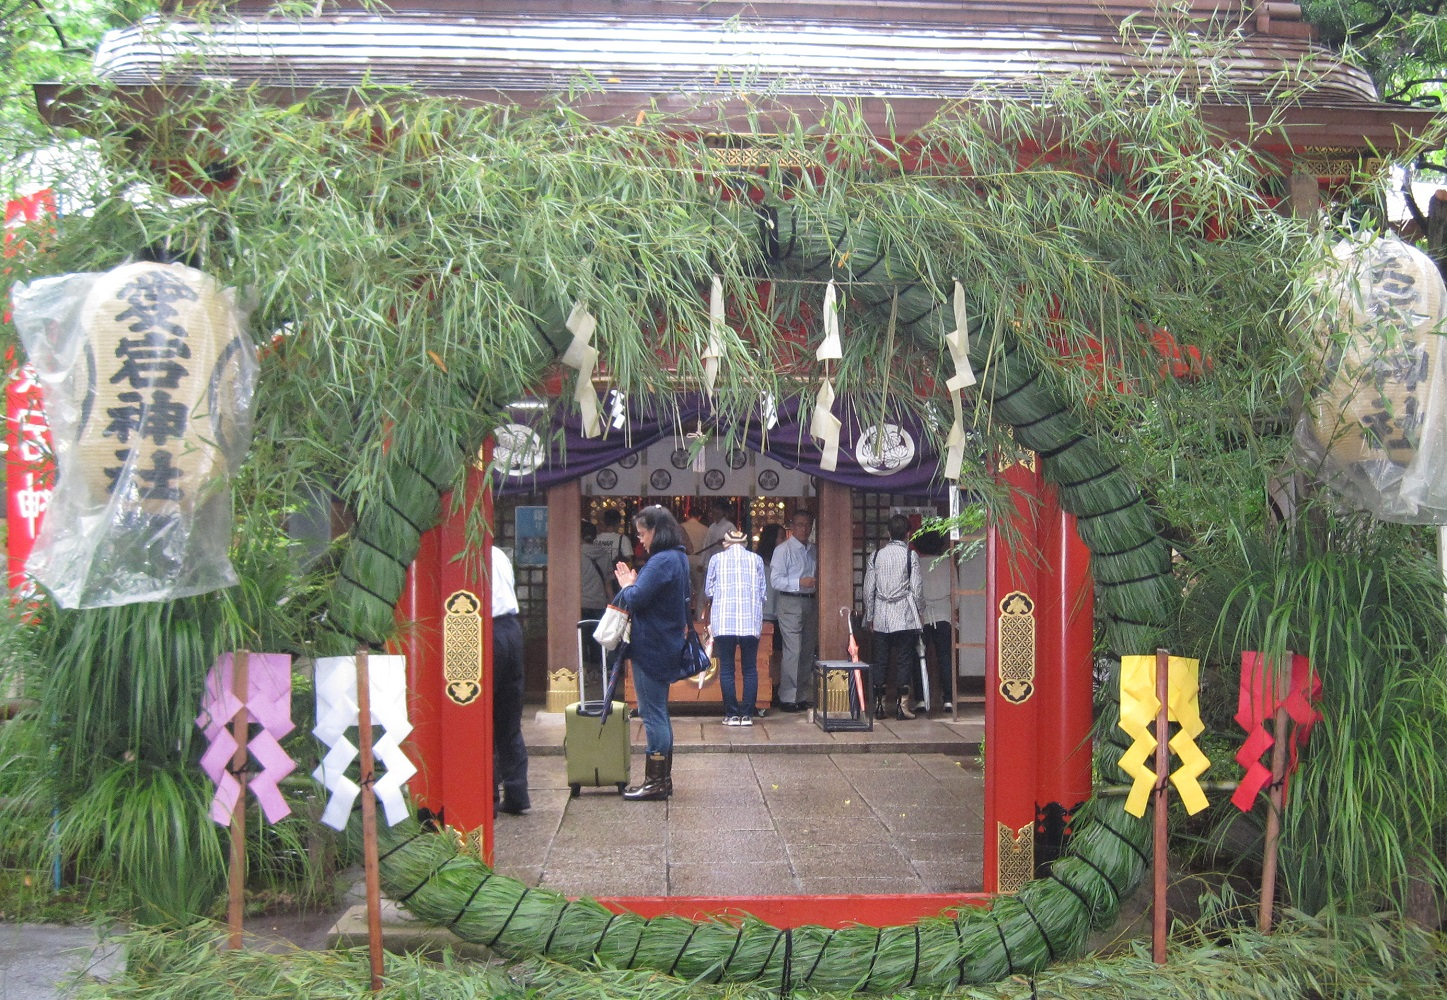 1000-day worship & physalis market at Atago Shrine 2017 (amuzen article)